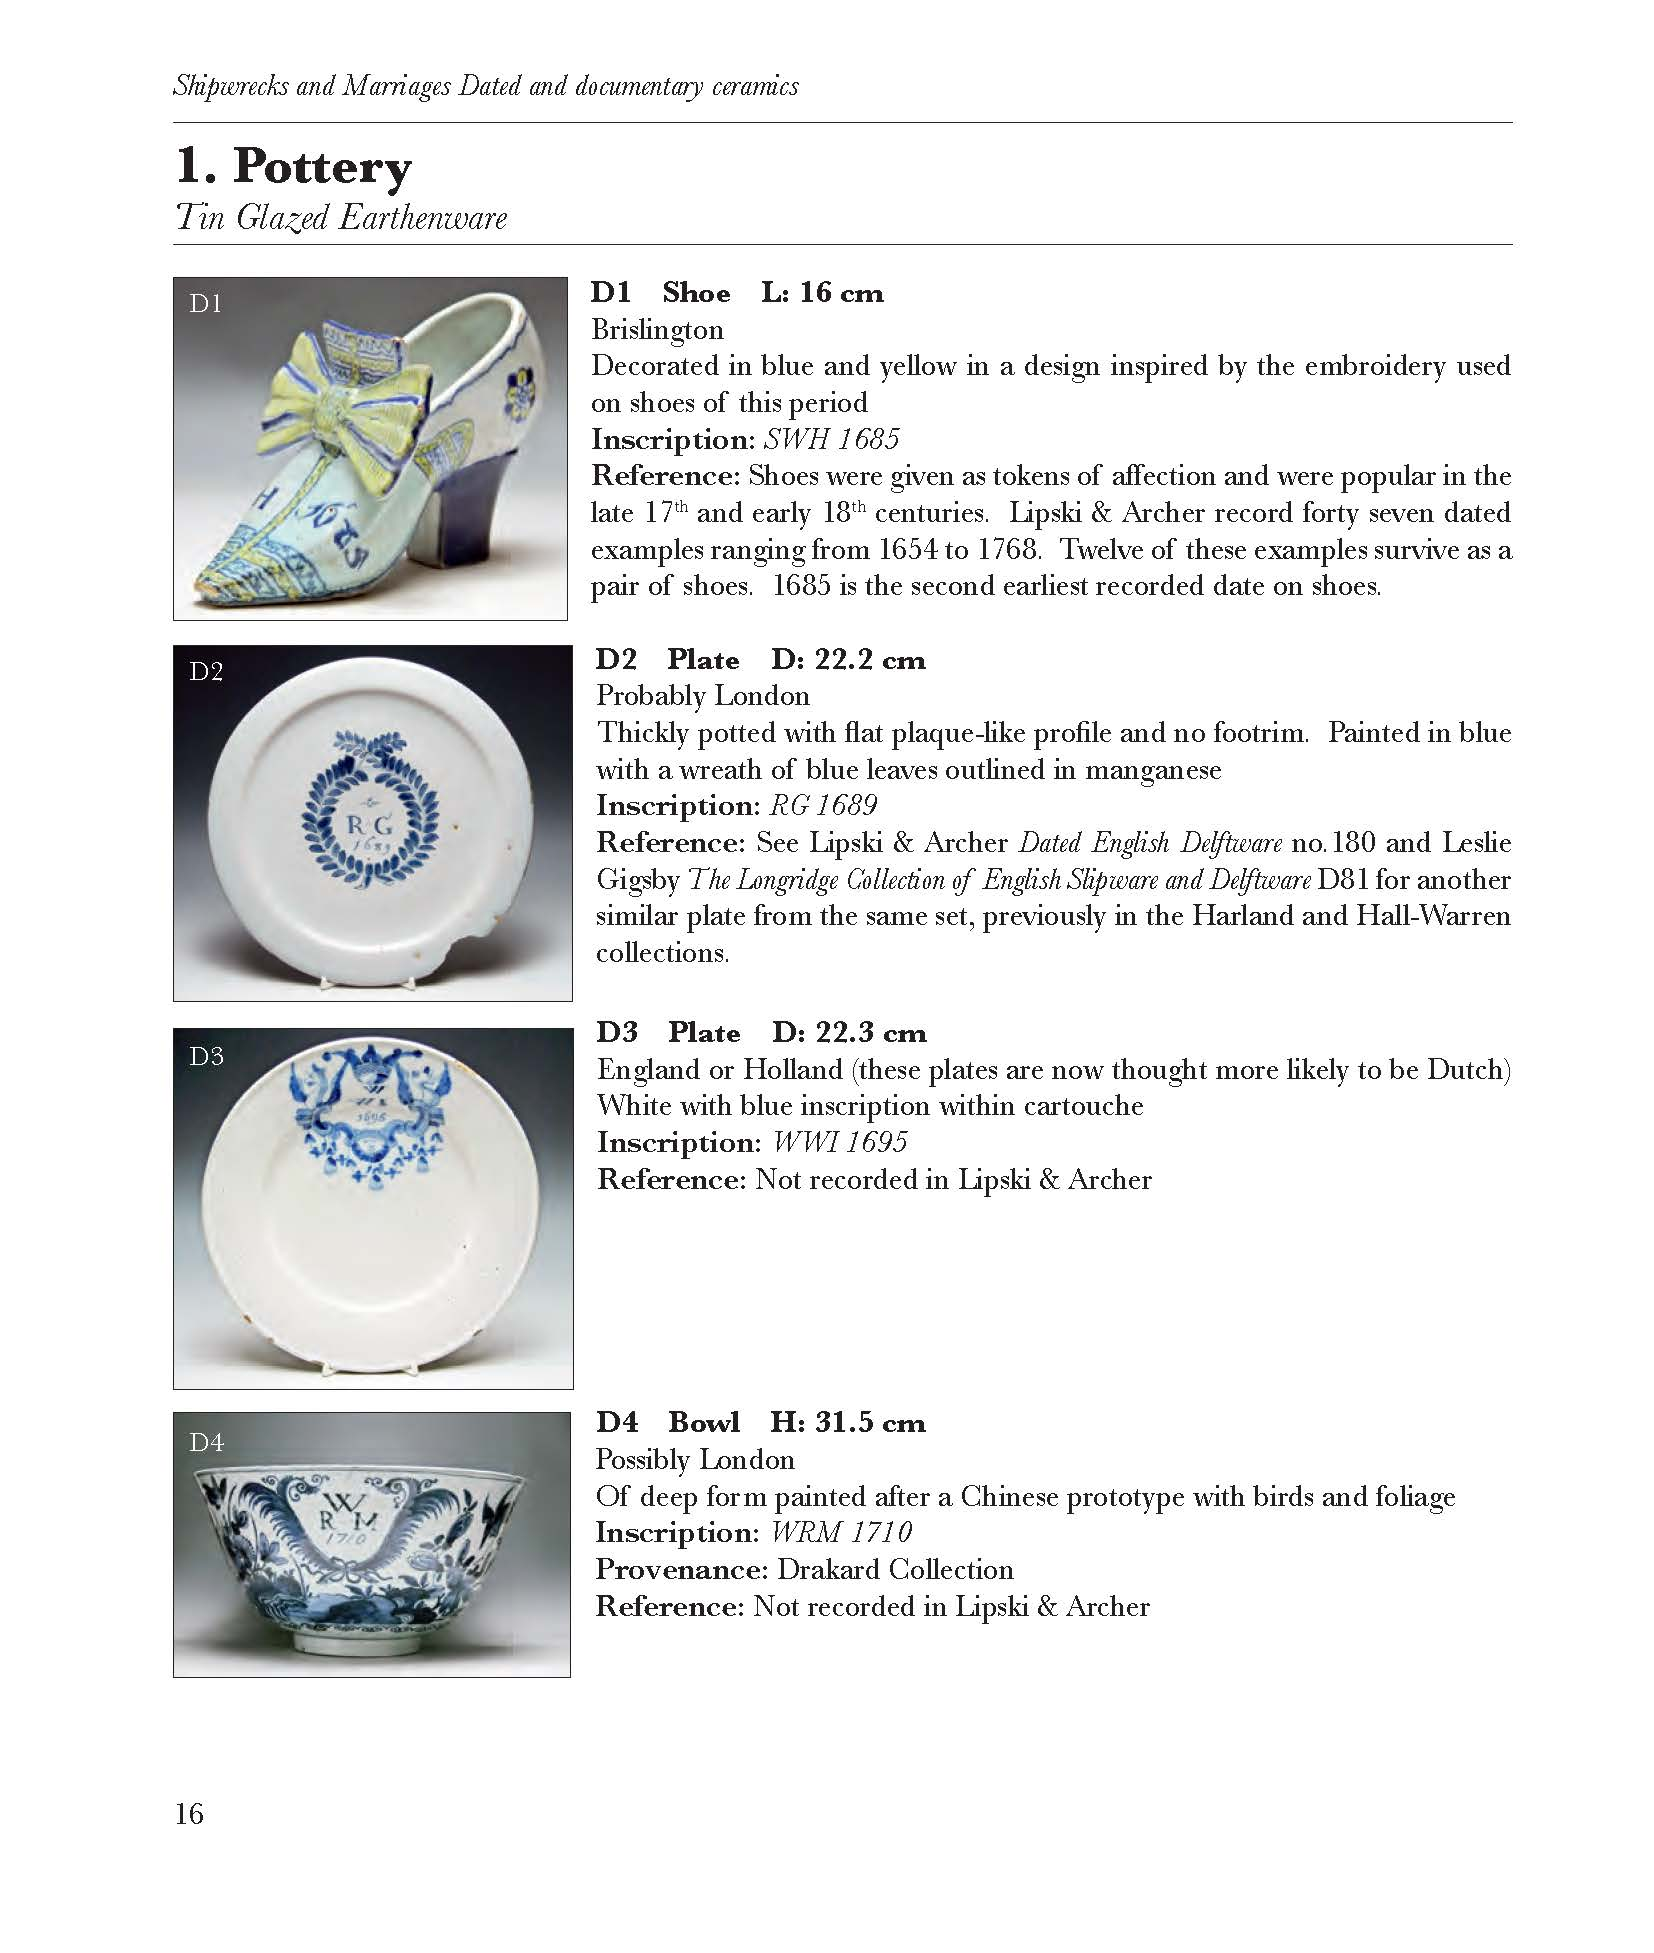 View Shipwrecks and Marriages - Dated and Documentary Ceramics